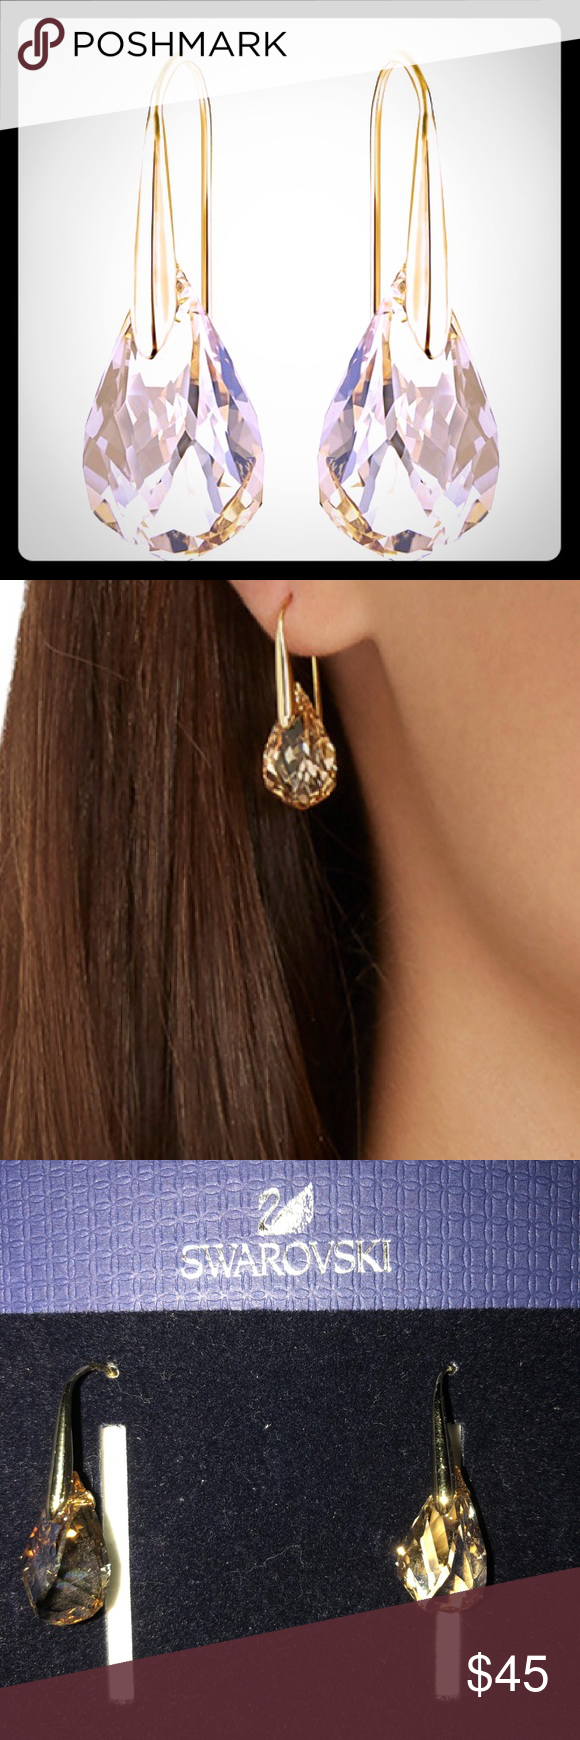 d27b8e71f Swarovski Energic pierced earrings, Gold Plating Featuring contemporary  detailing and a design inspired by the